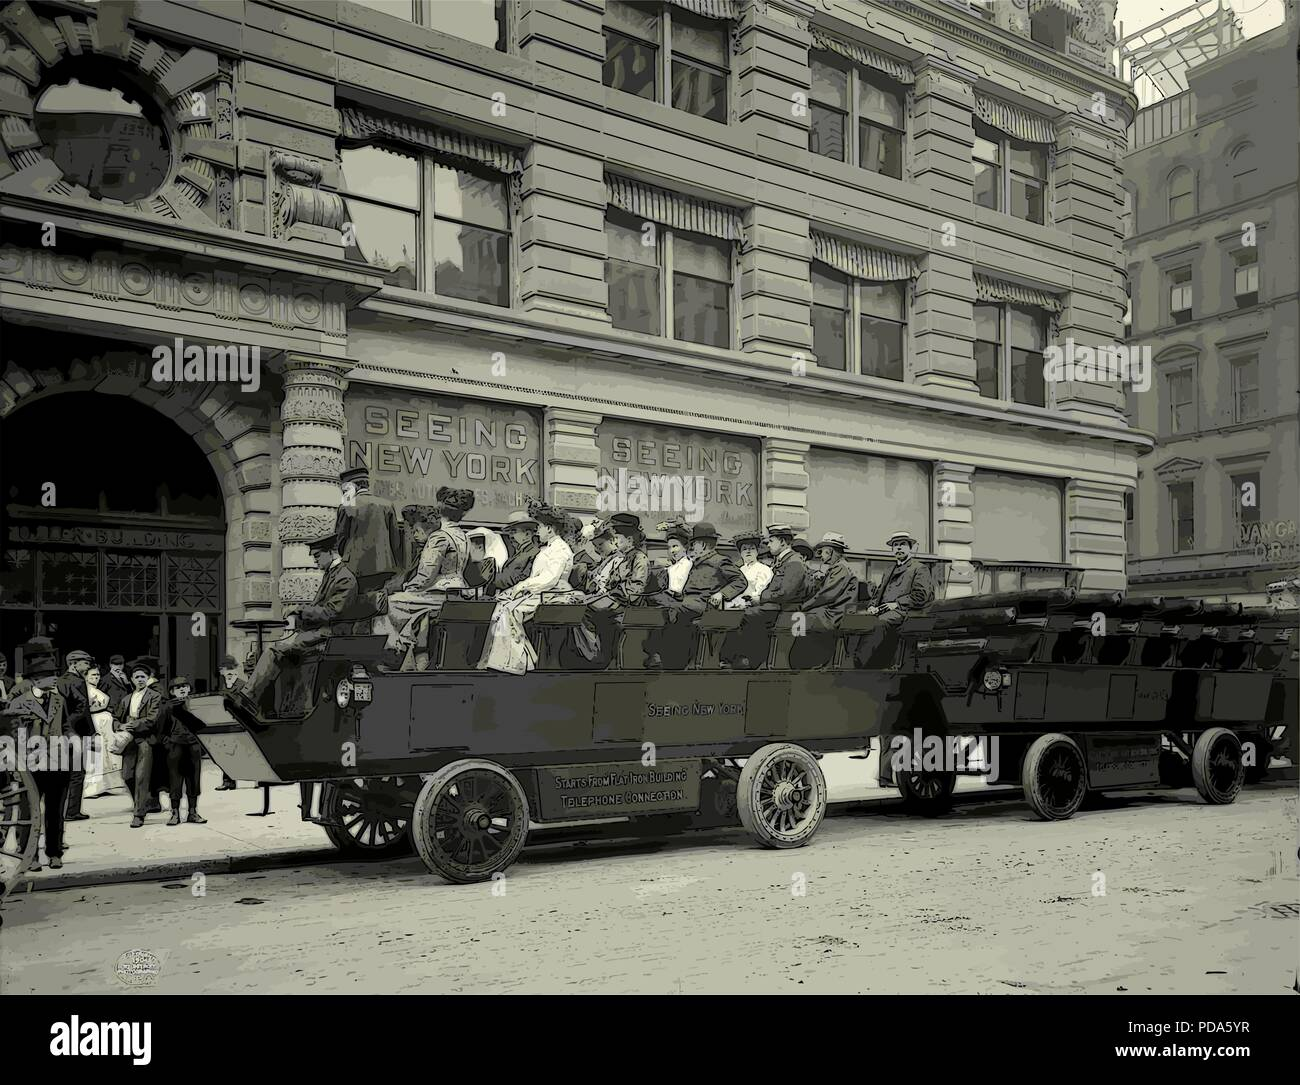 New York circa 1900 city tours vectorization from old photochrome - Stock Vector